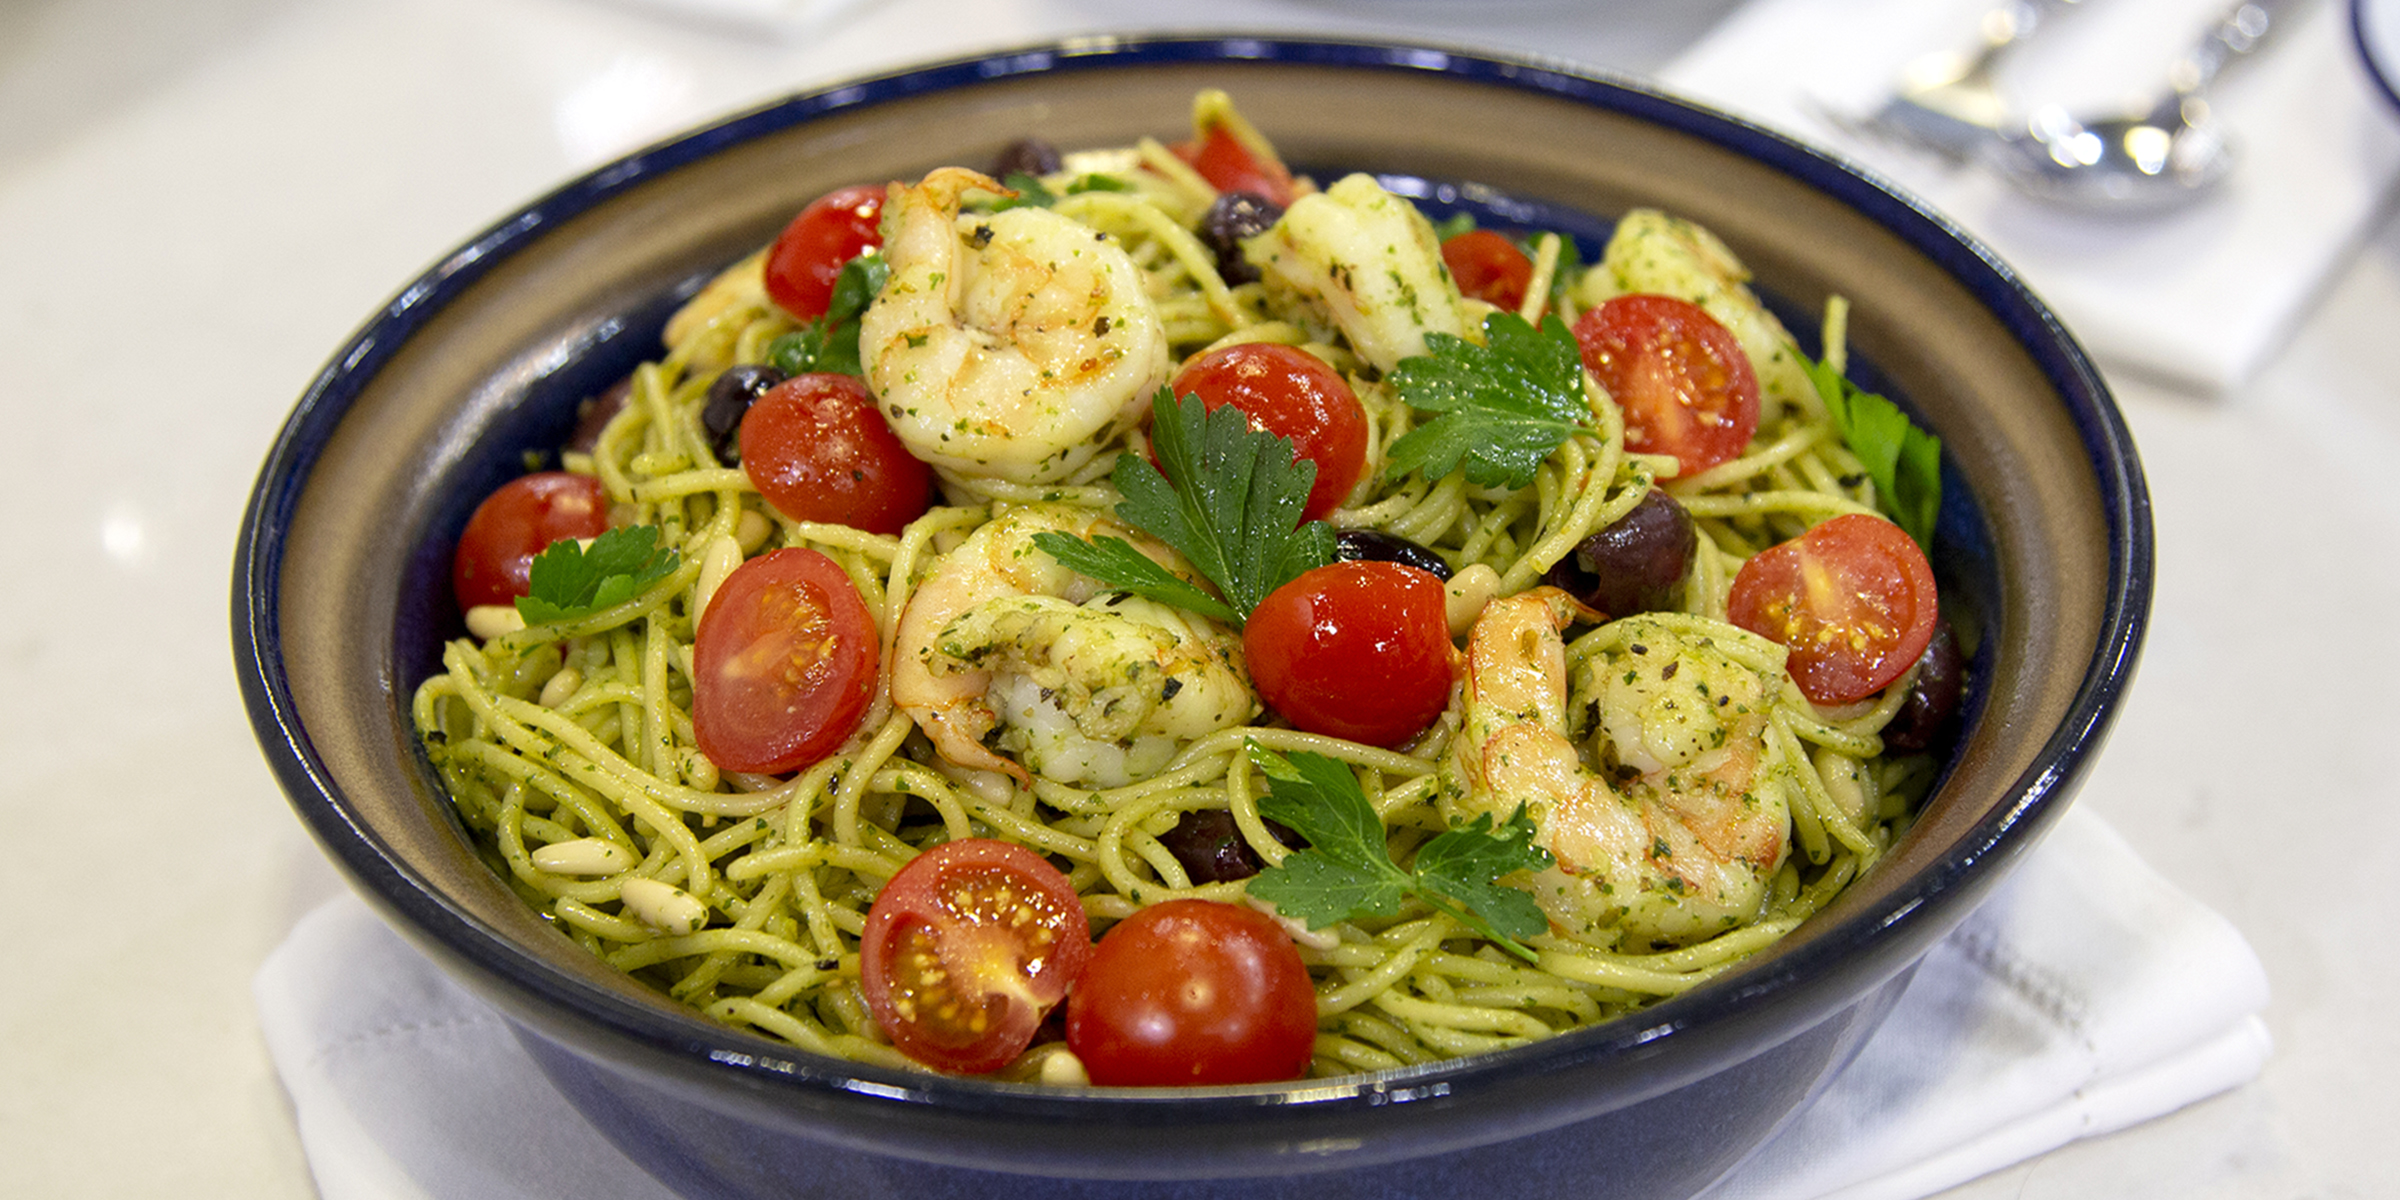 Add Mediterranean flair to pasta with shrimp, olives and pesto sauce